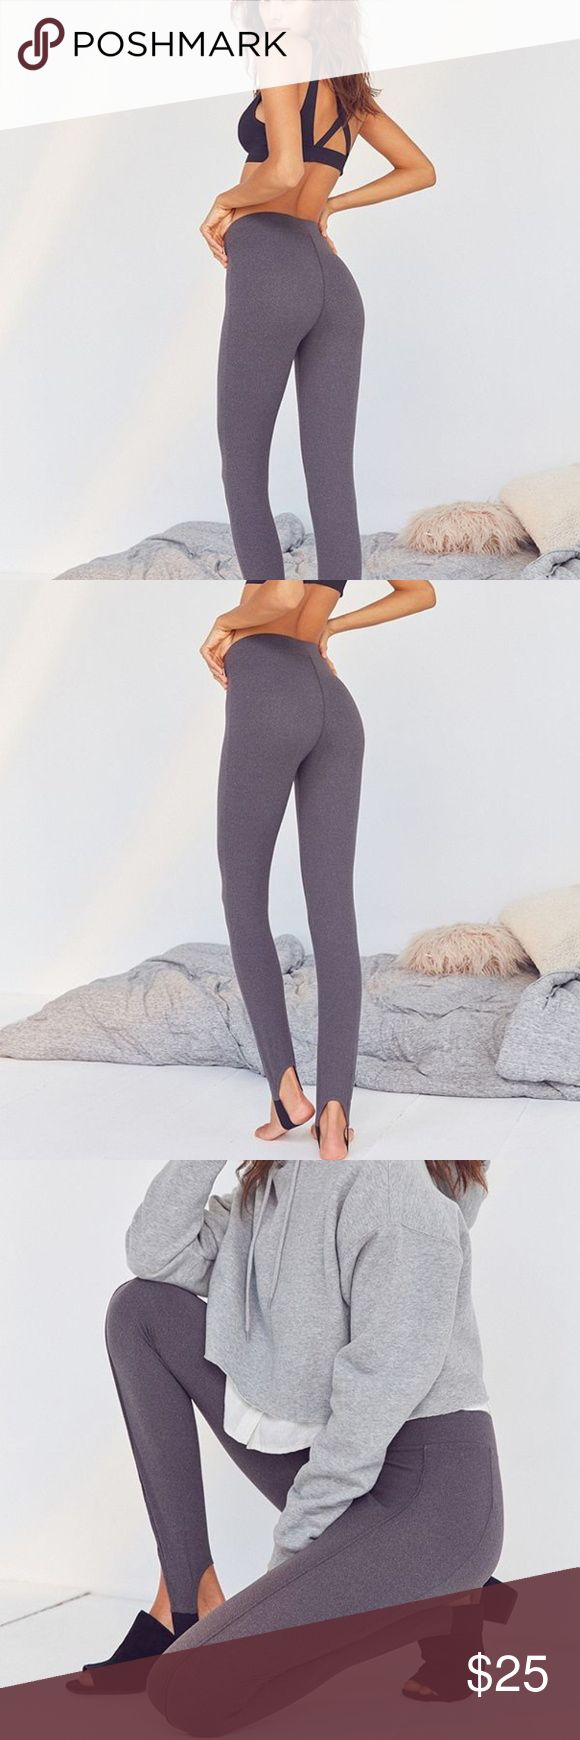 Out From Under Big Spoon Stirrup Leggings Legs for days in these '80s-inspired stirrup leggings by Out From Under. Seamed leggings with a high-waisted fit in a stretchy knit featuring stretchy stirrup banding that wraps around heel. Pair with your favourite heels for a throwback look that commands the room. Urban Outfitters Pants Leggings